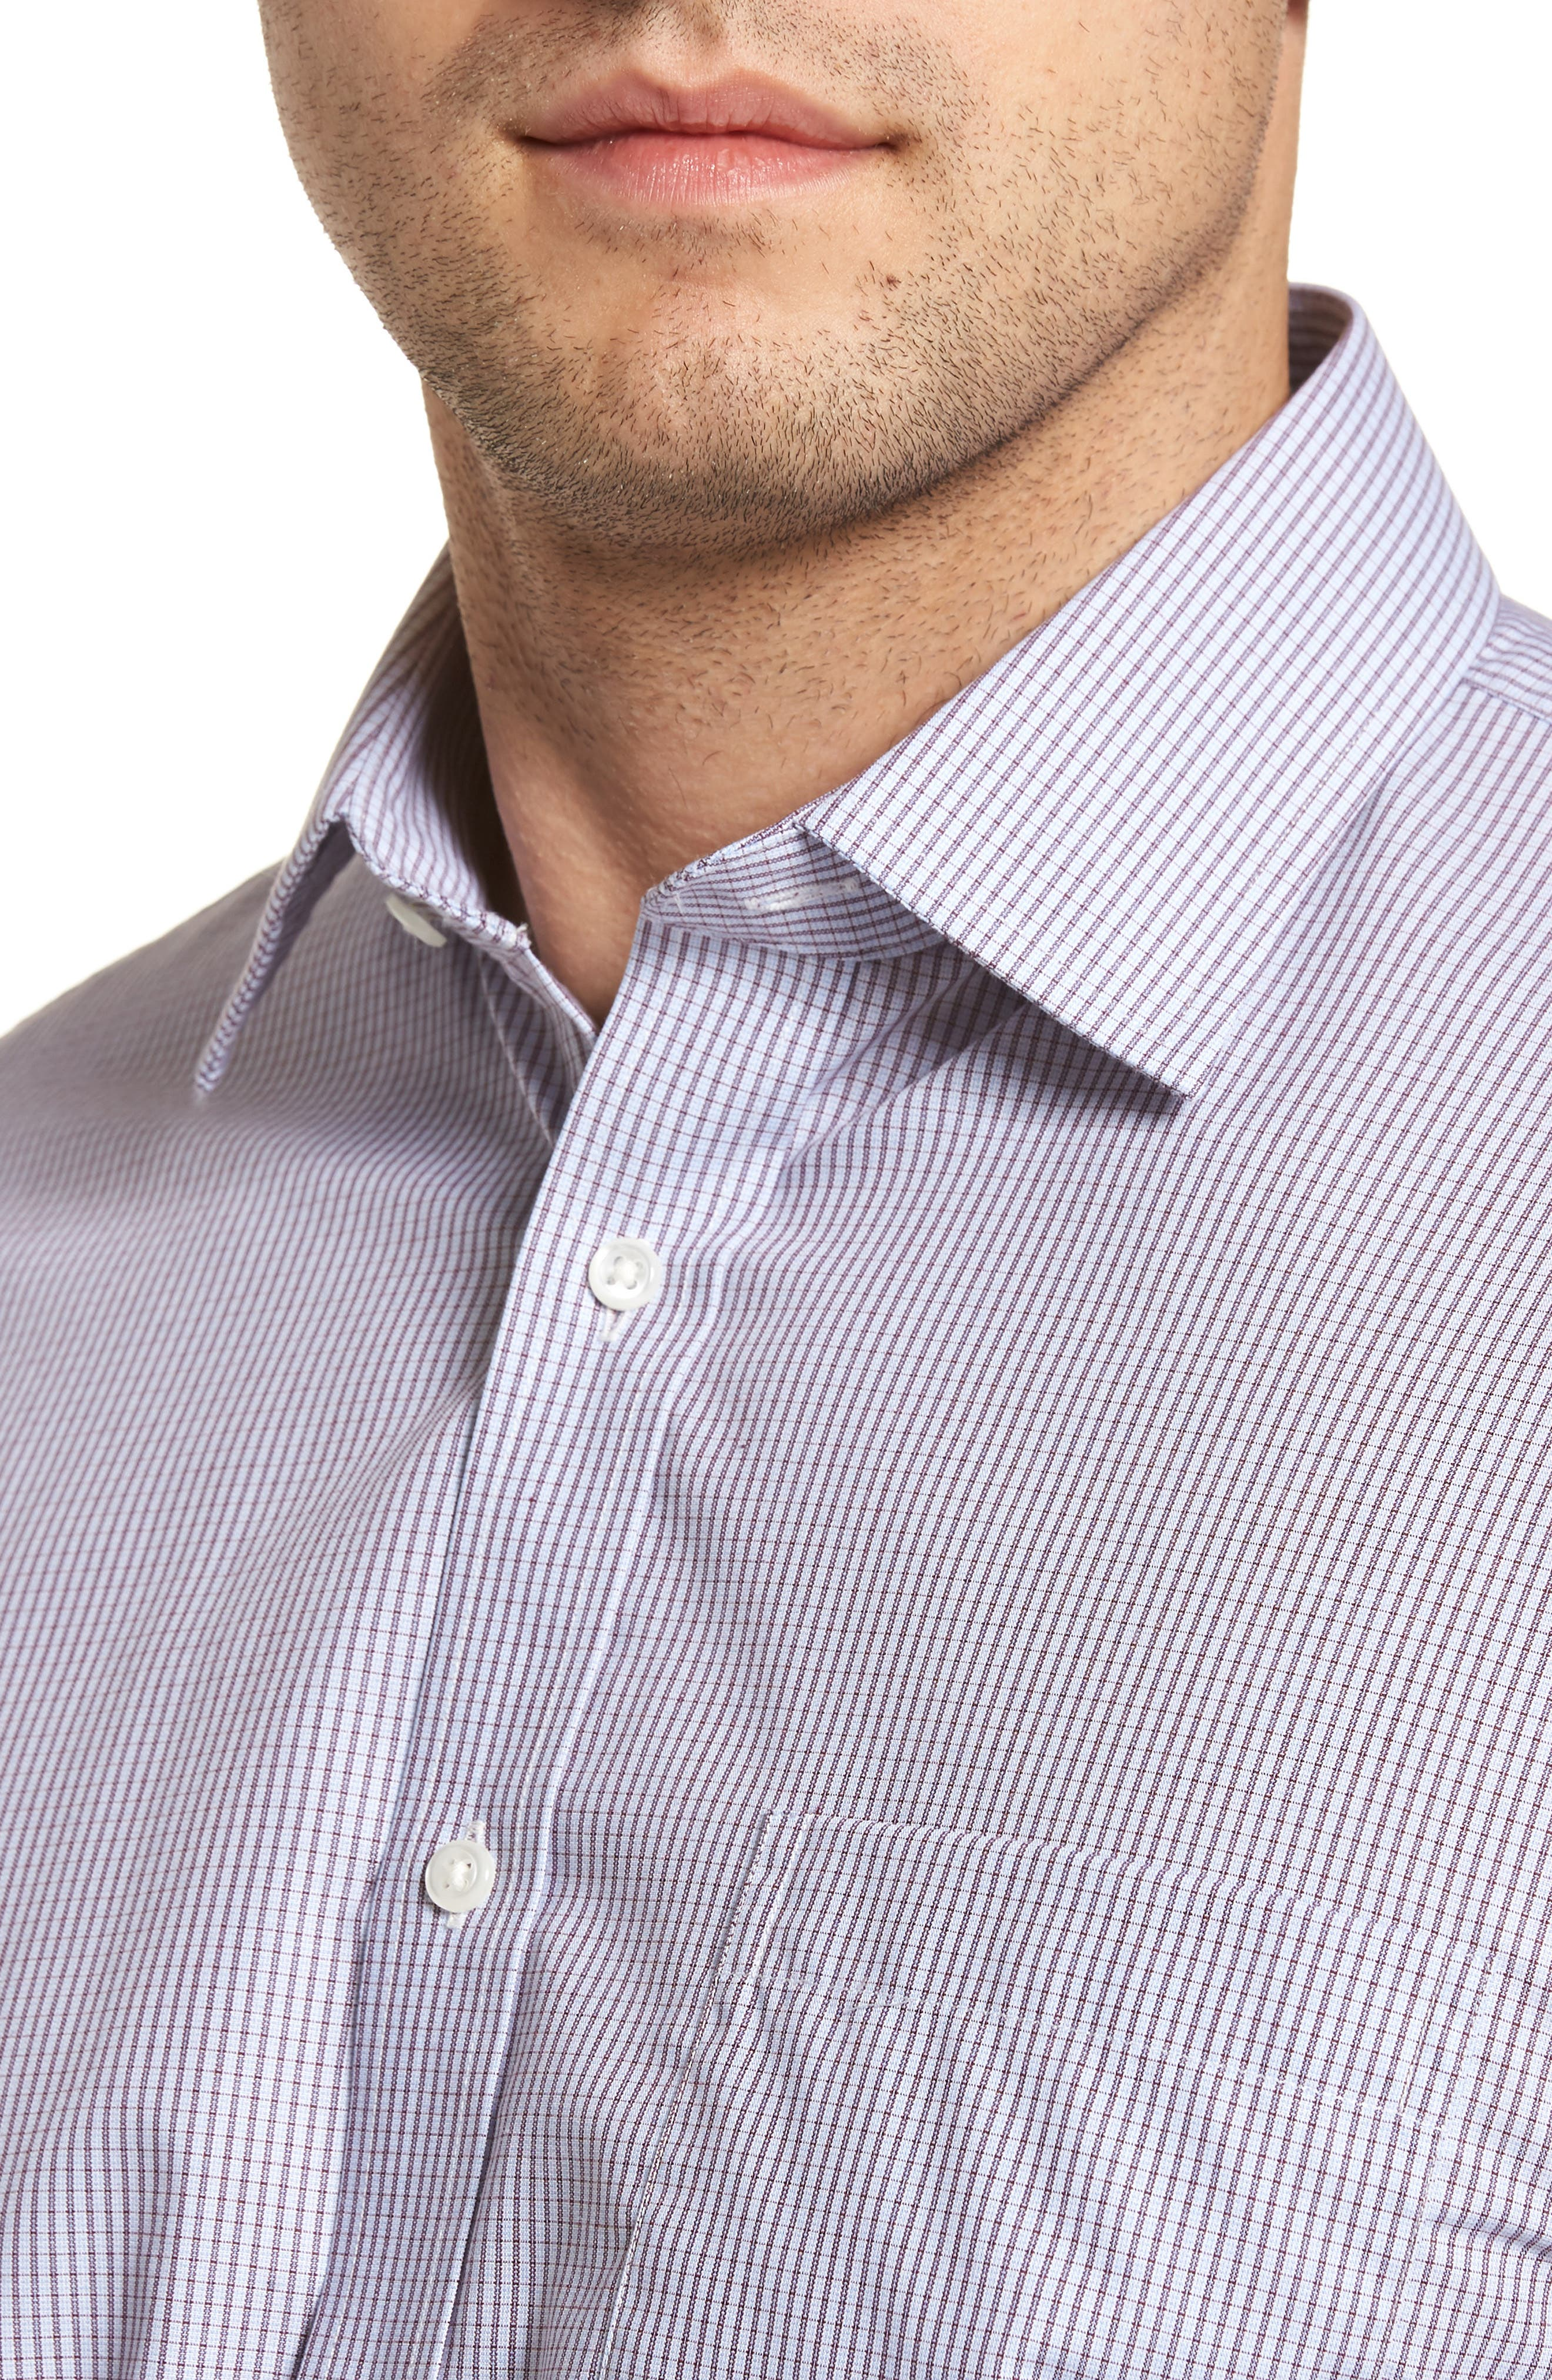 Traditional Fit Non-Iron Check Dress Shirt,                             Alternate thumbnail 2, color,                             Burgundy Royale